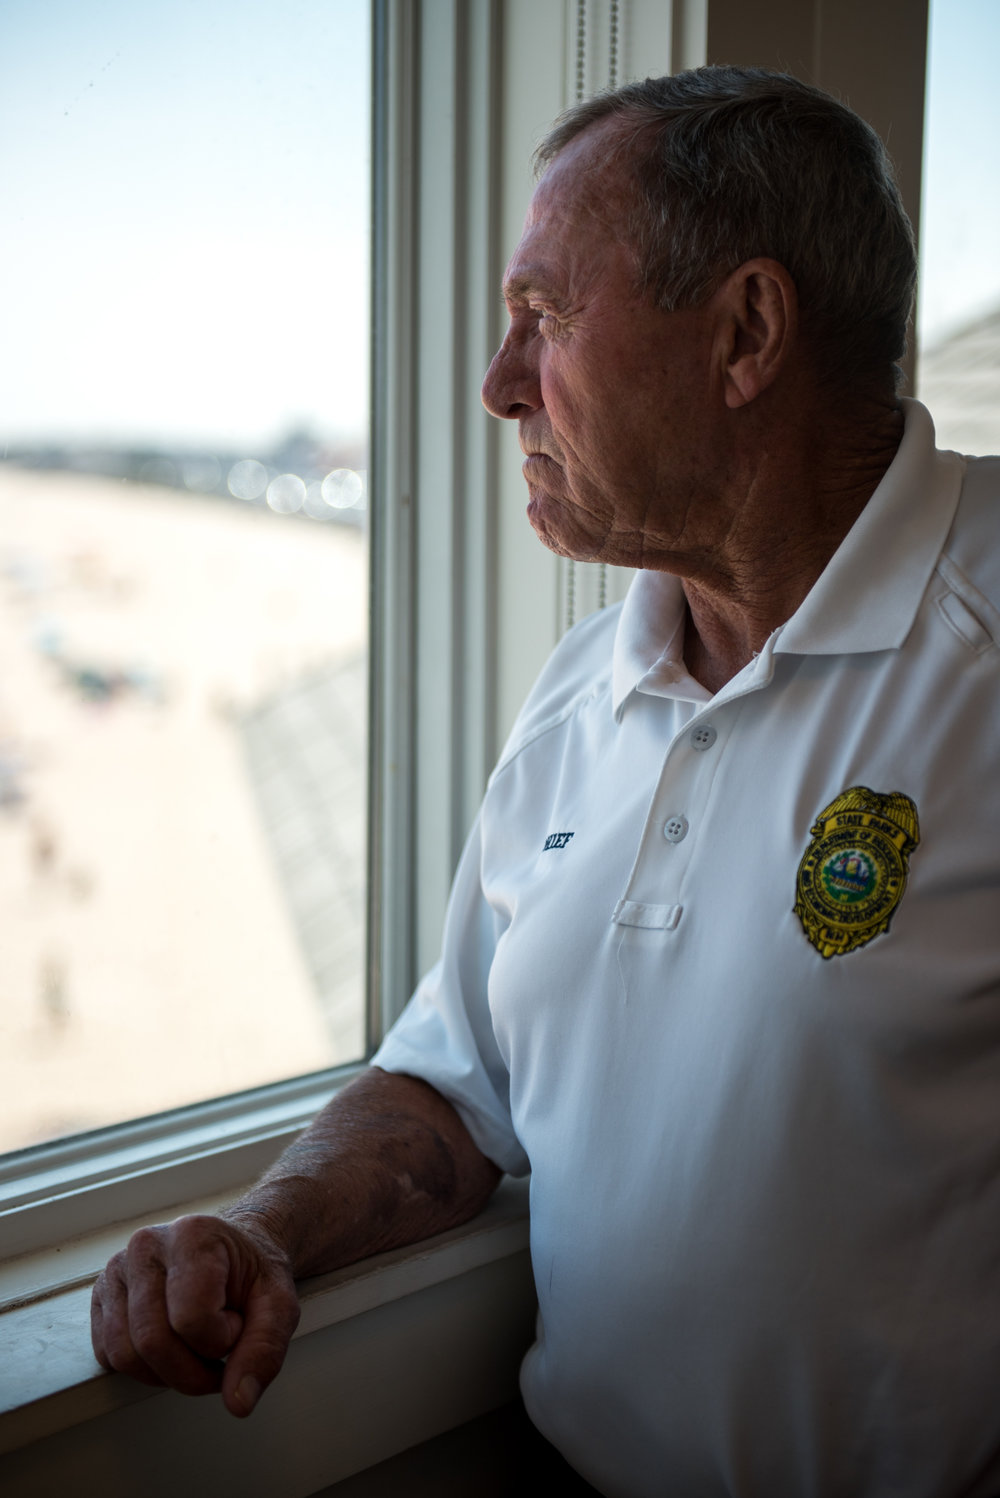 Hampton, NH - 7/21/17 - Chief of Lifeguards,James Donahue looks out for rip tides during a sunny Friday afternoon at Hampton Beach on Friday, July 21, 2017. Early this week dozens of rescues occurred due to strong rip tides, an unusually high number. (Nicholas Pfosi for The Boston Globe) Reporter: Billy Baker Topic: 22rescues(2)